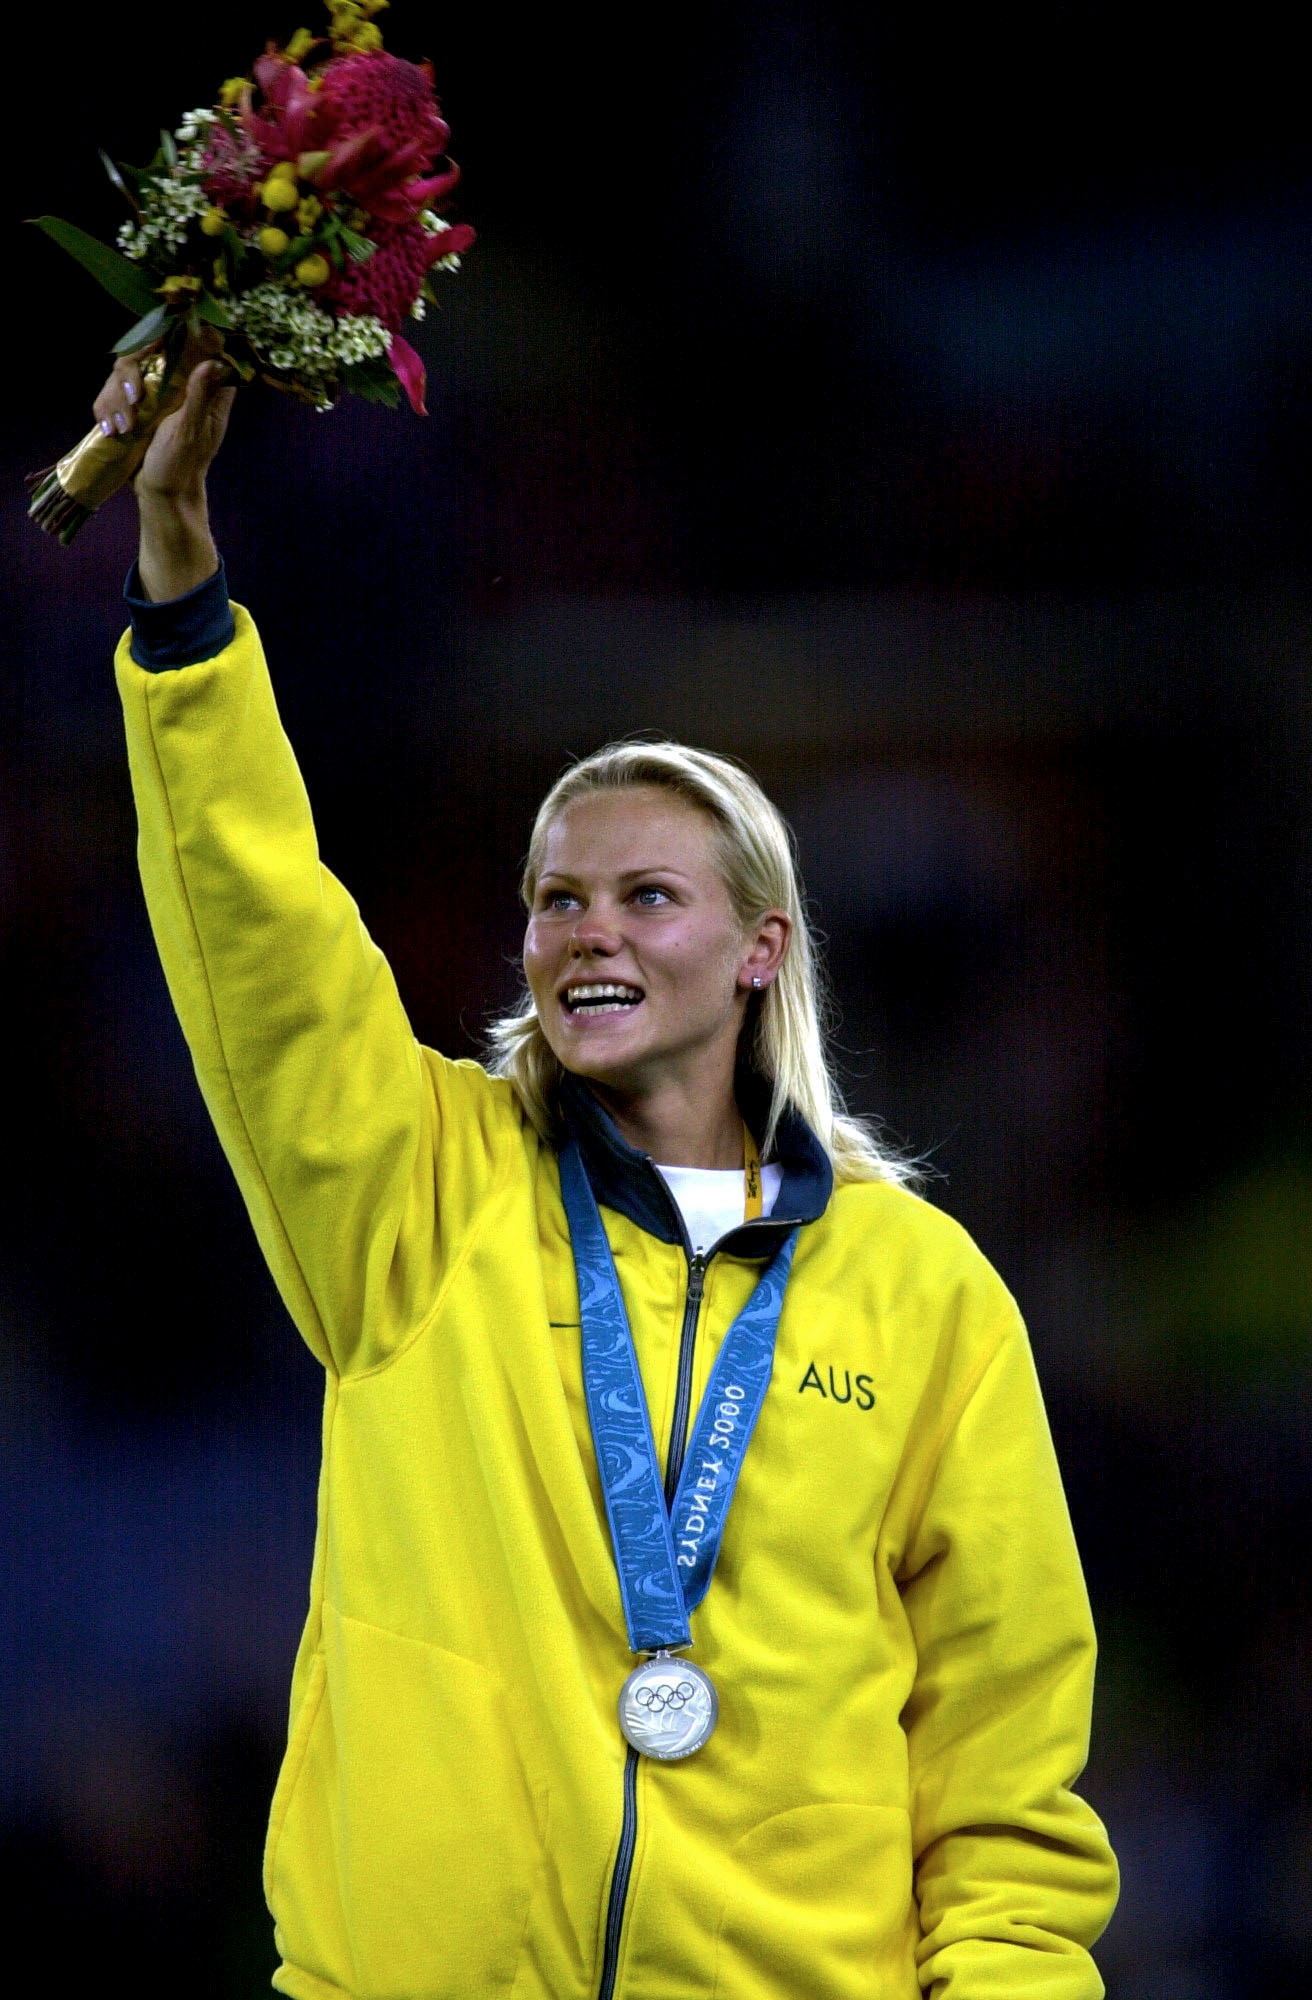 Grigorieva salutes the crowd after receiving her silver medal.